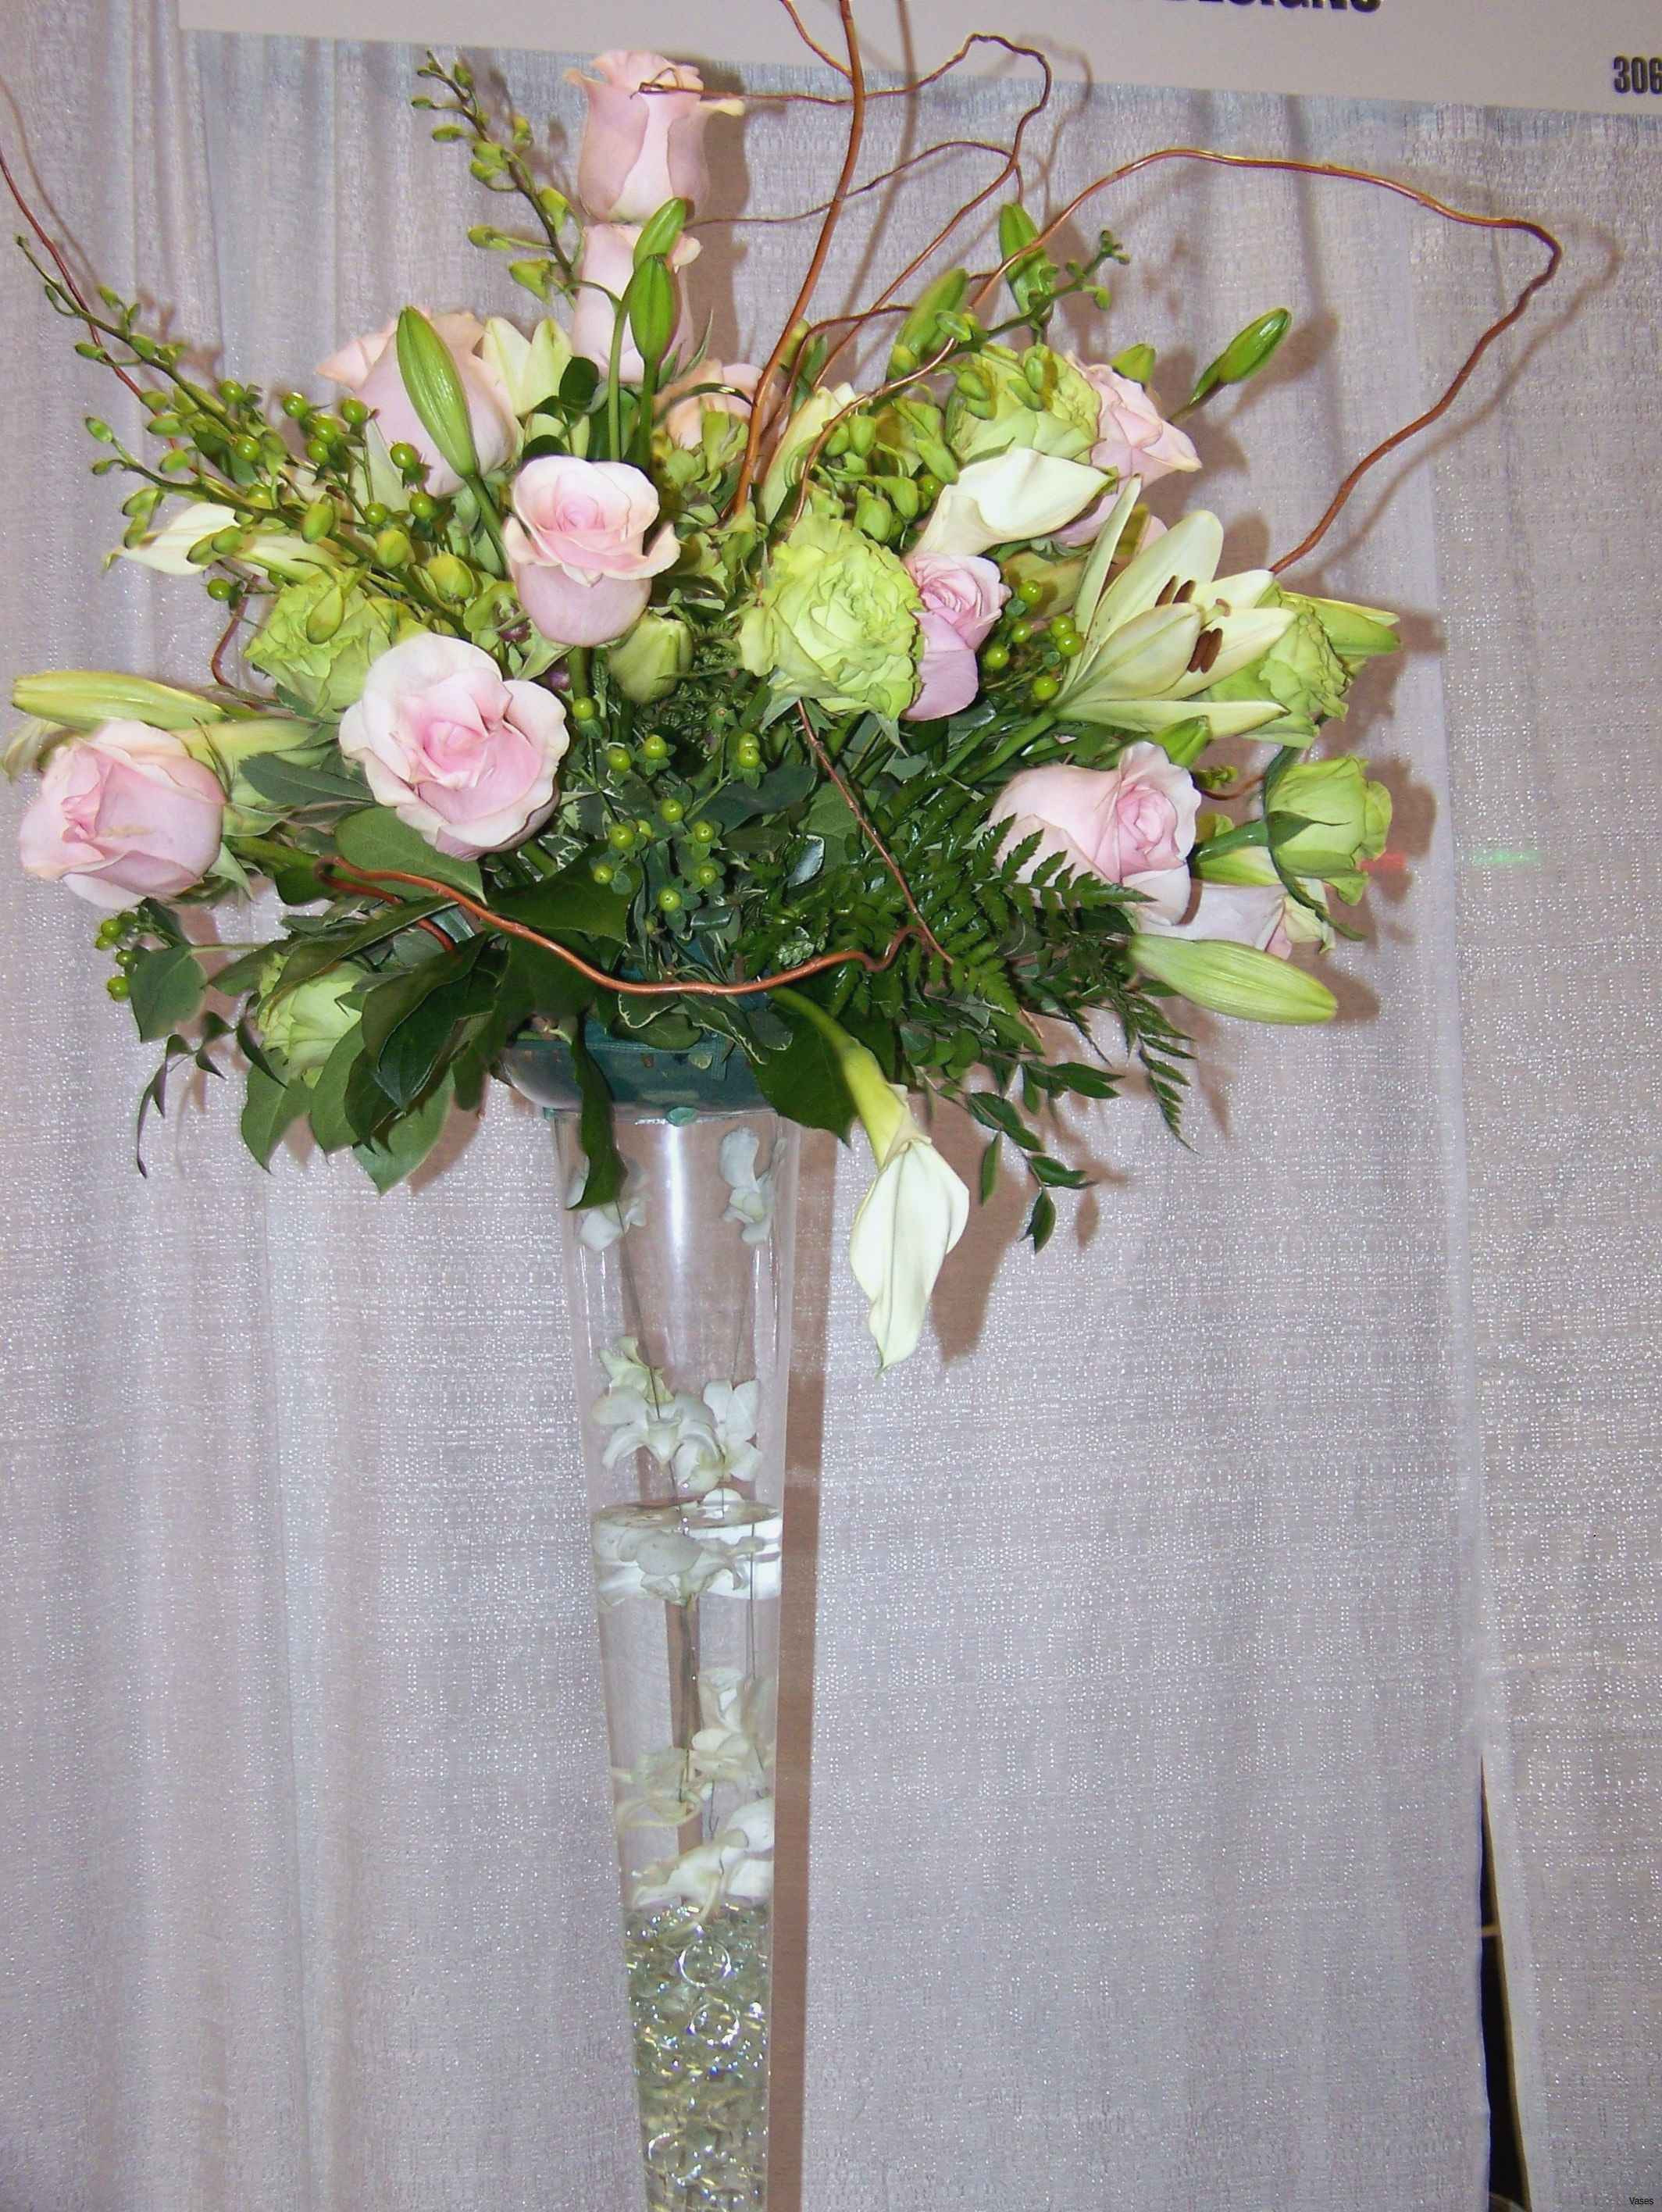 dollar general vases of impressive home wedding decorations or 29 elegant dollar general regarding gallery of impressive home wedding decorations or 29 elegant dollar general home decor